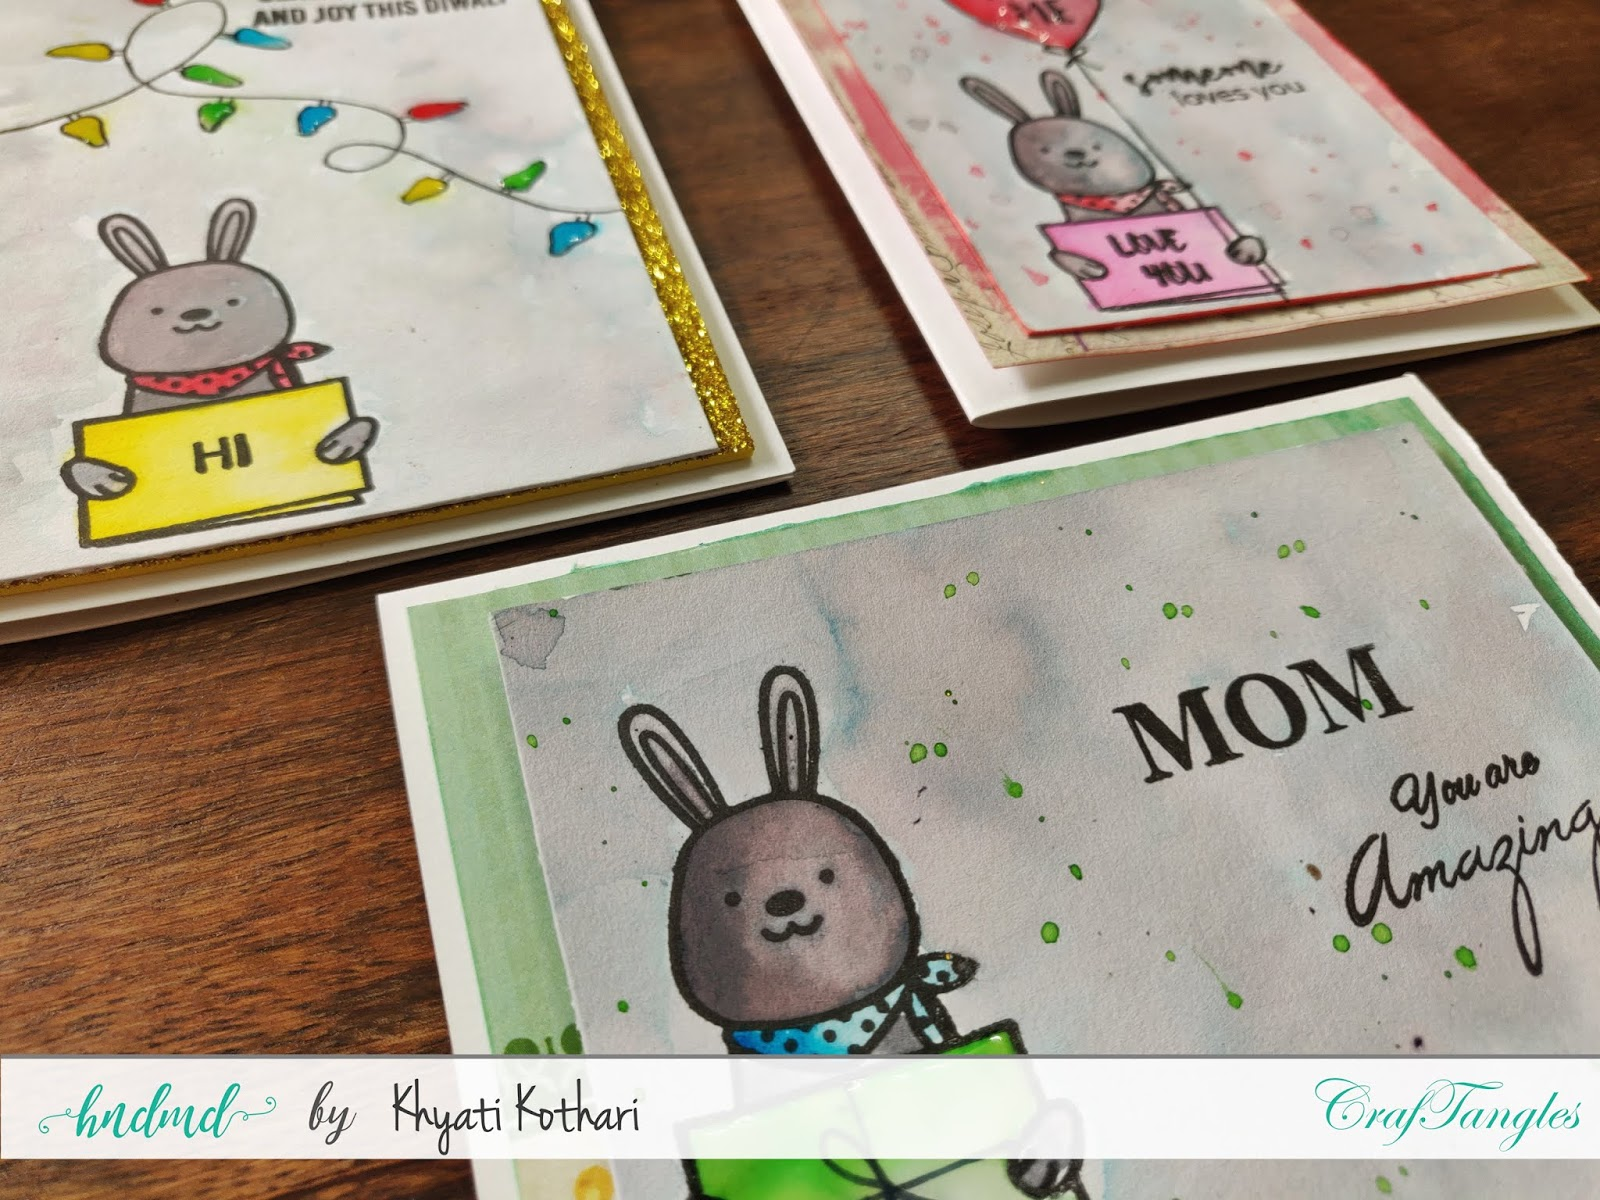 How to Stretch your stamps - Cardmaking video tutorial 3